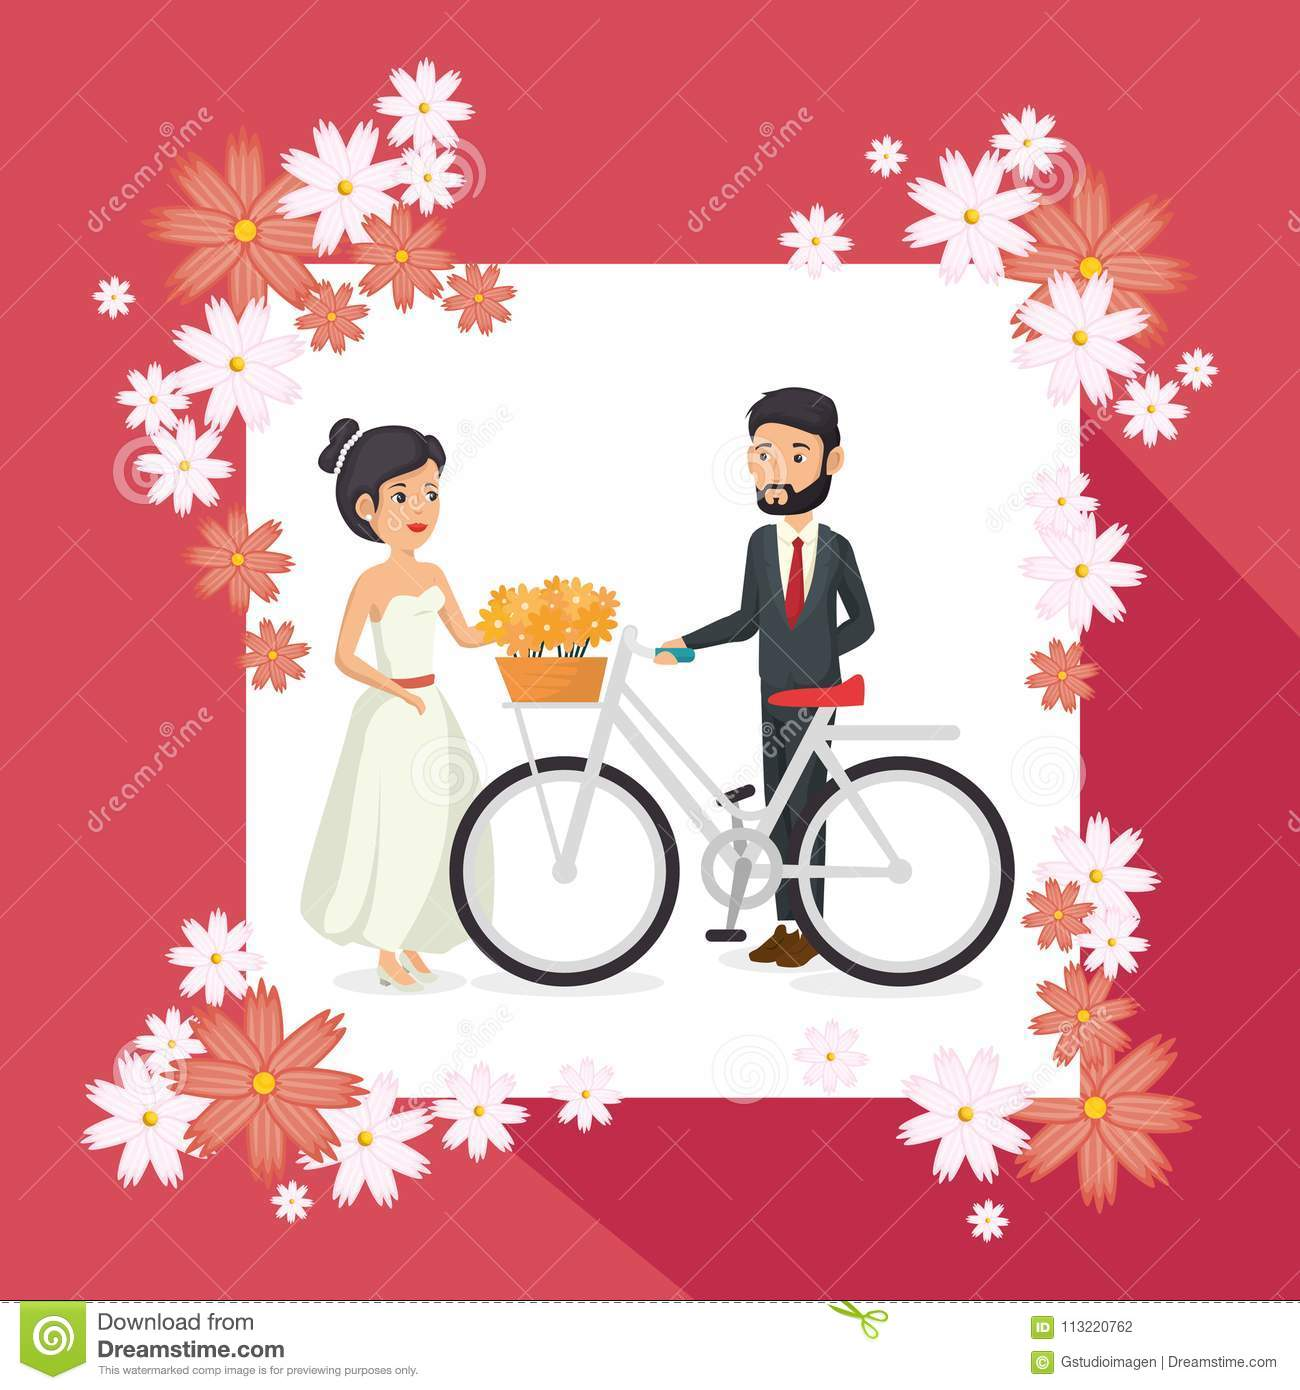 Romantic Picture Of Just Married Couple With Floral Frame Stock ...